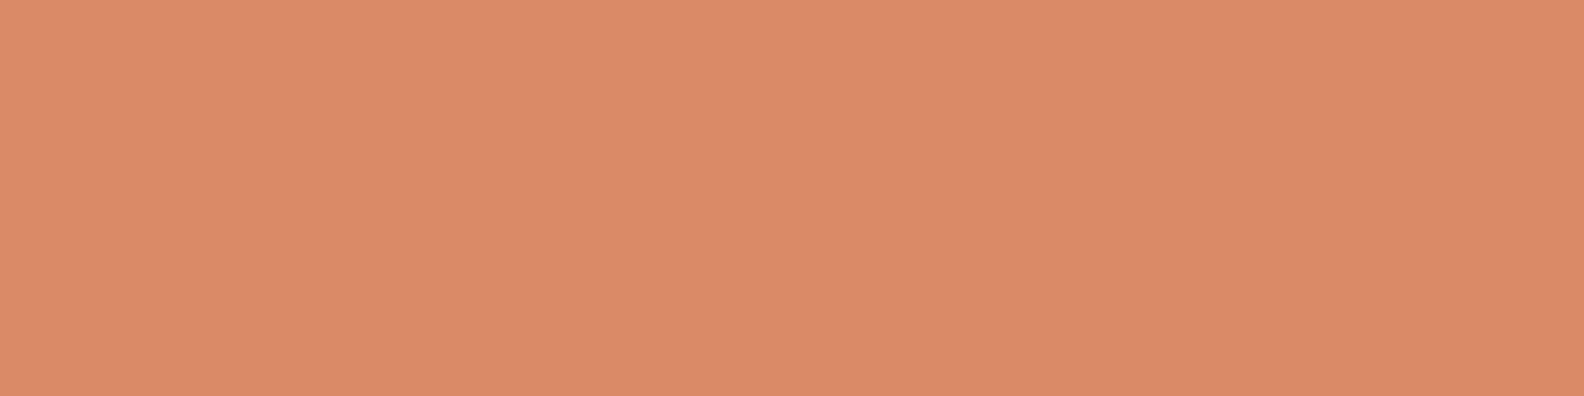 1584x396 Copper Crayola Solid Color Background